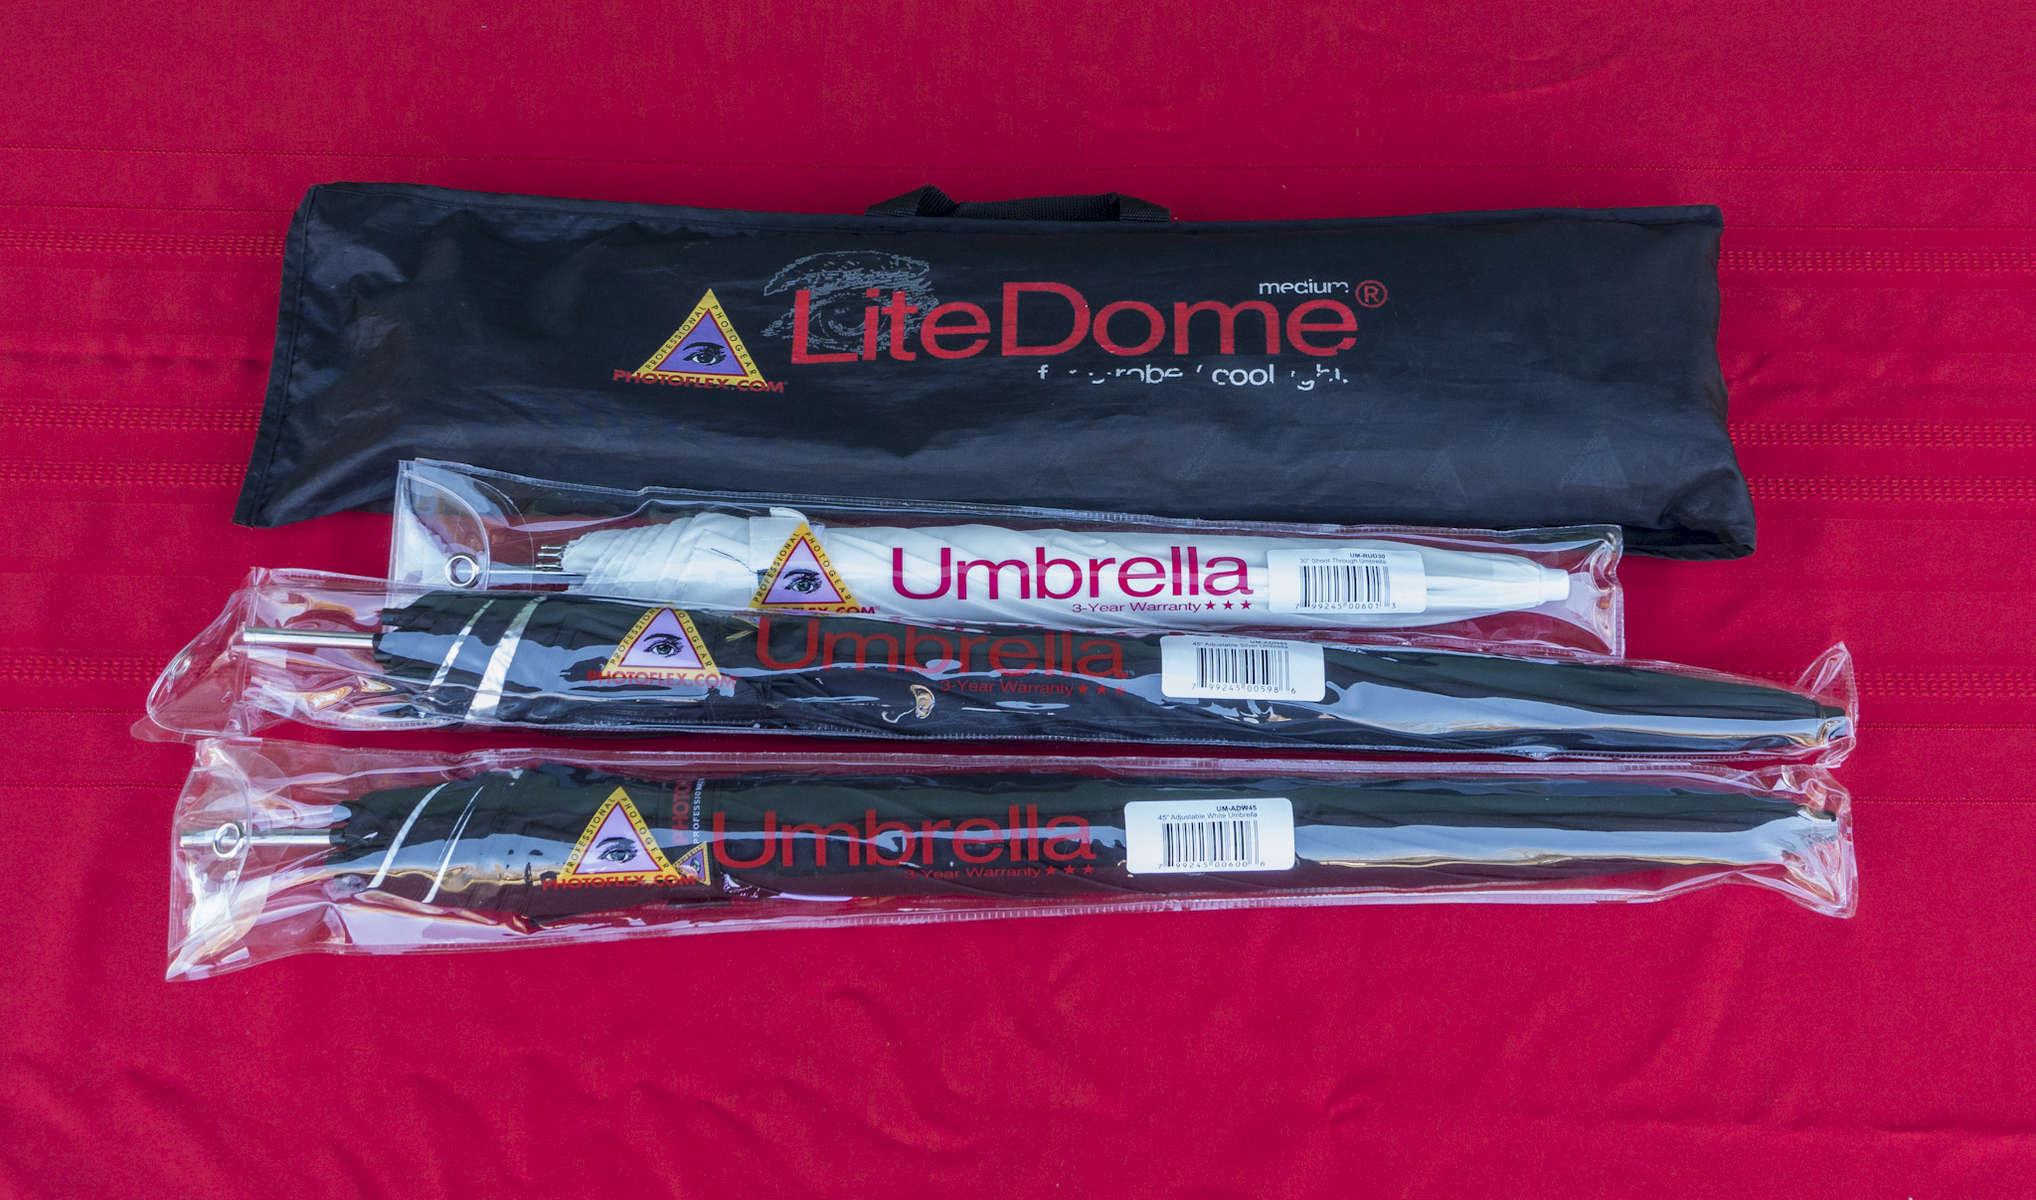 http://www.photoflex.com/products/category/umbrellas/